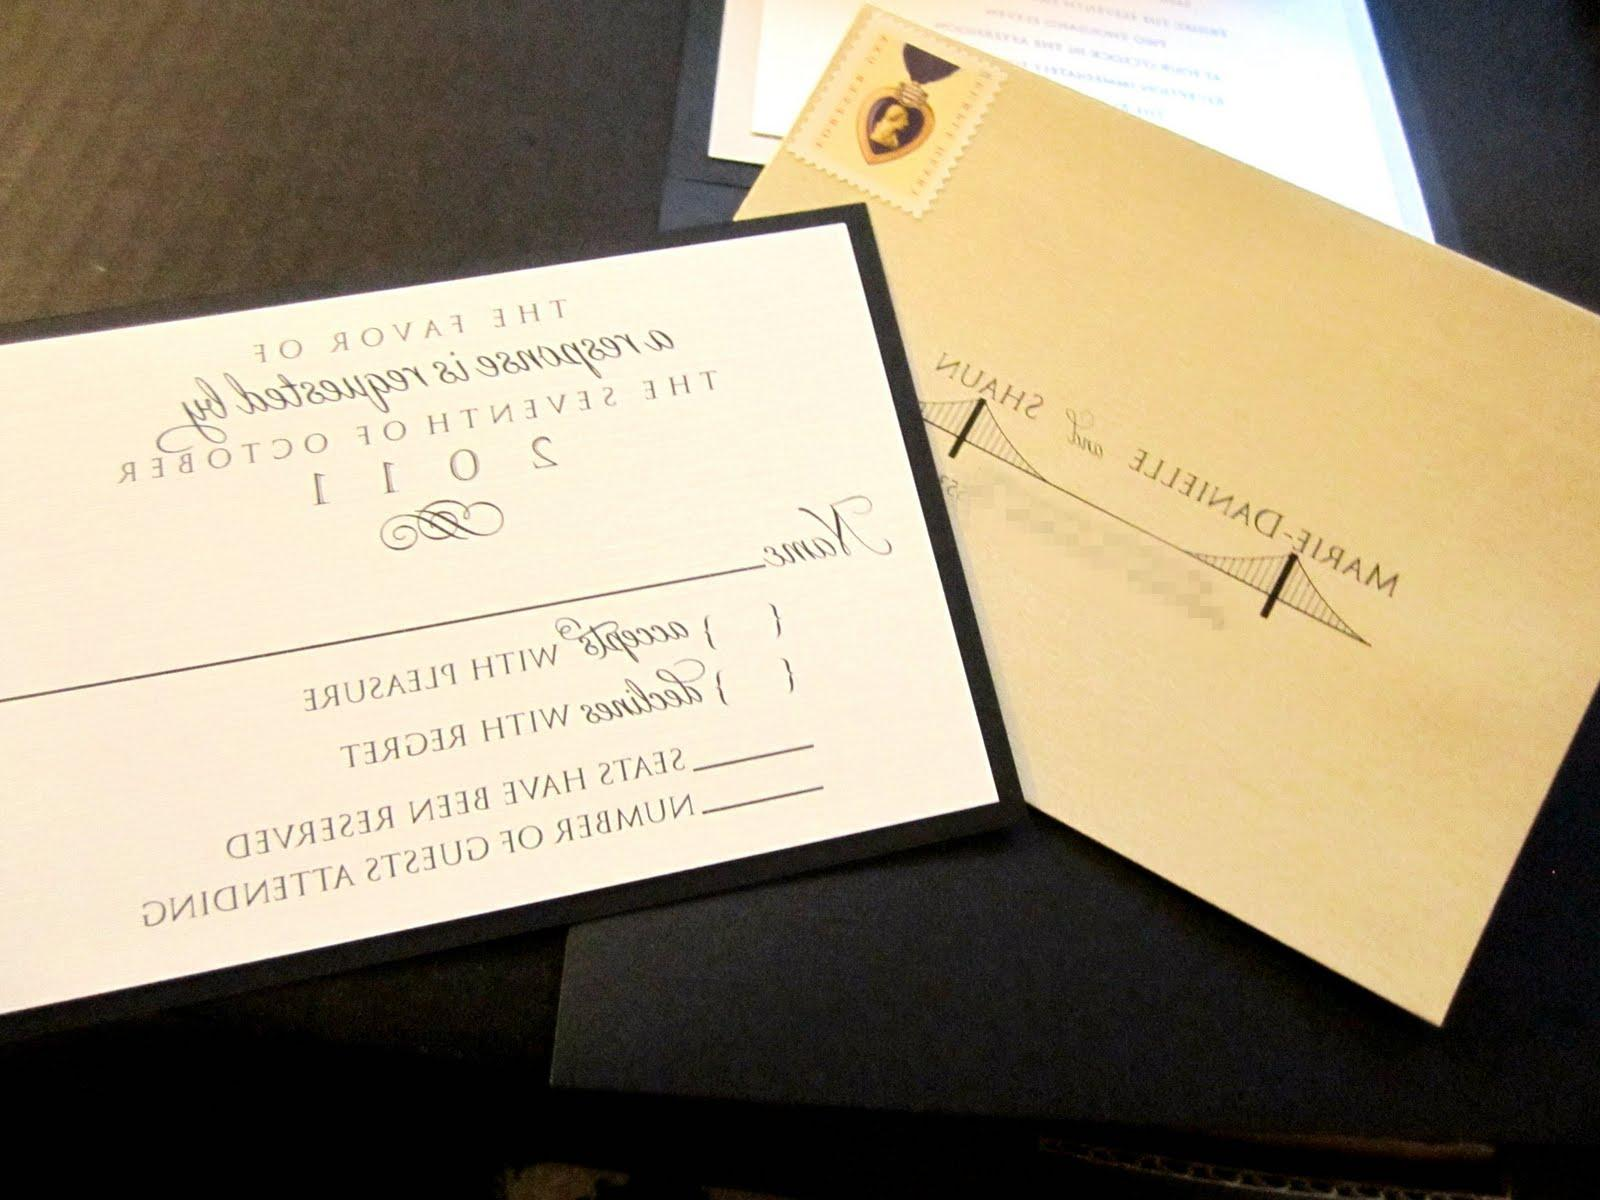 The accommodations card